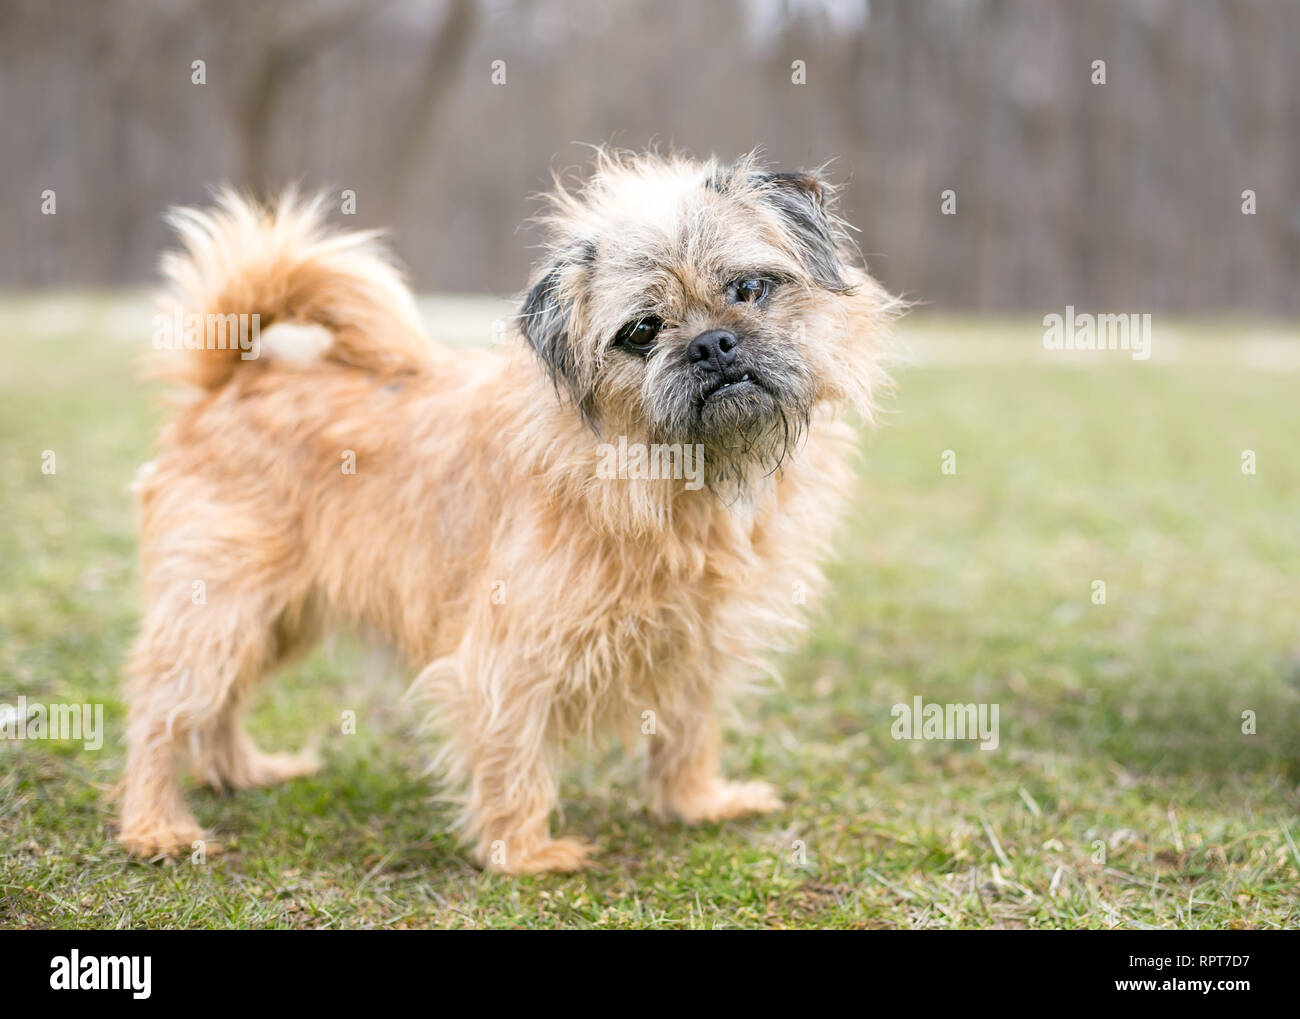 A Brussels Griffon/Pug mixed breed dog listening with a head tilt Stock Photo